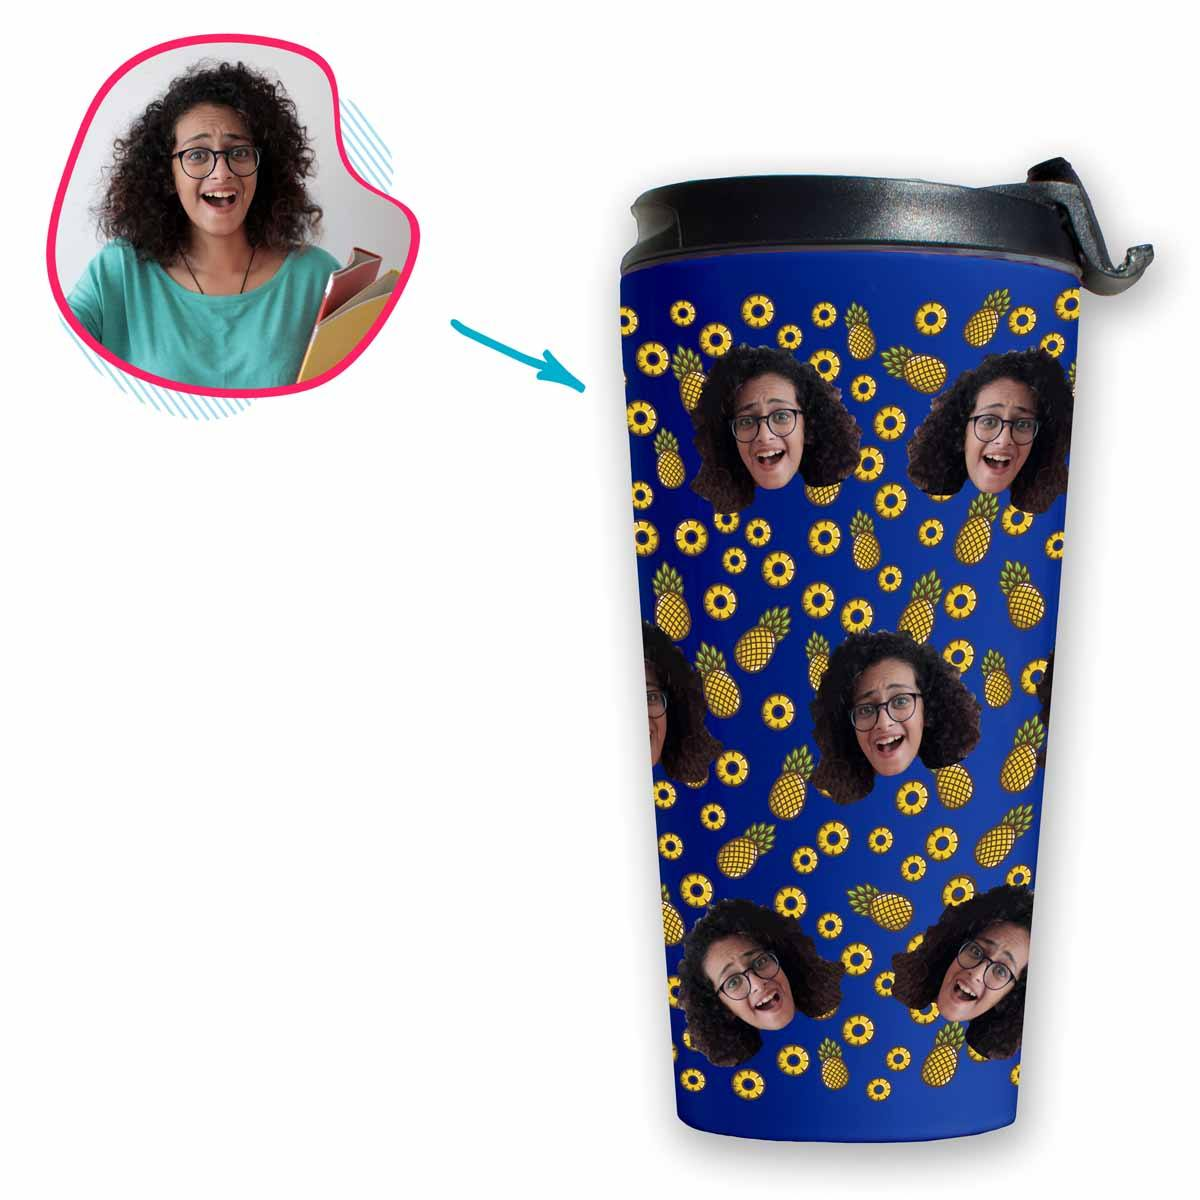 darkblue Fruits travel mug personalized with photo of face printed on it